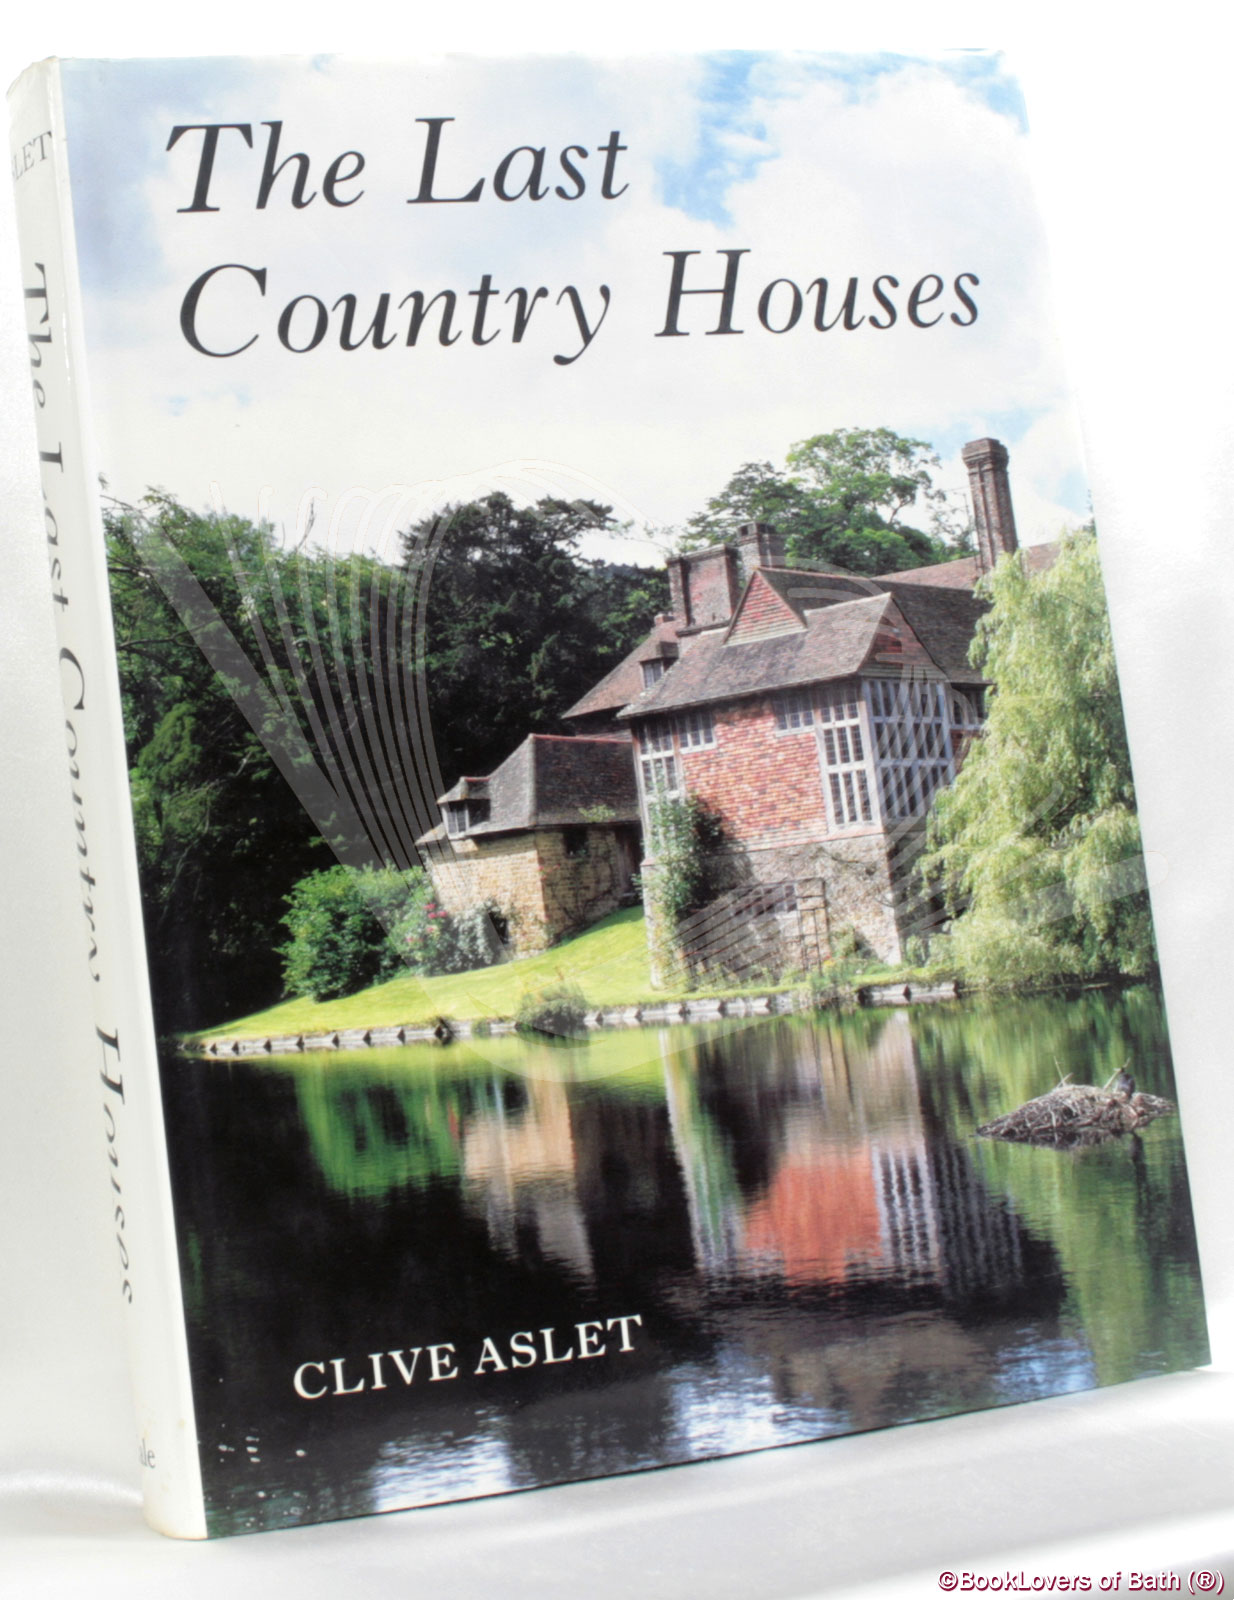 The Last Country Houses - Clive Aslet